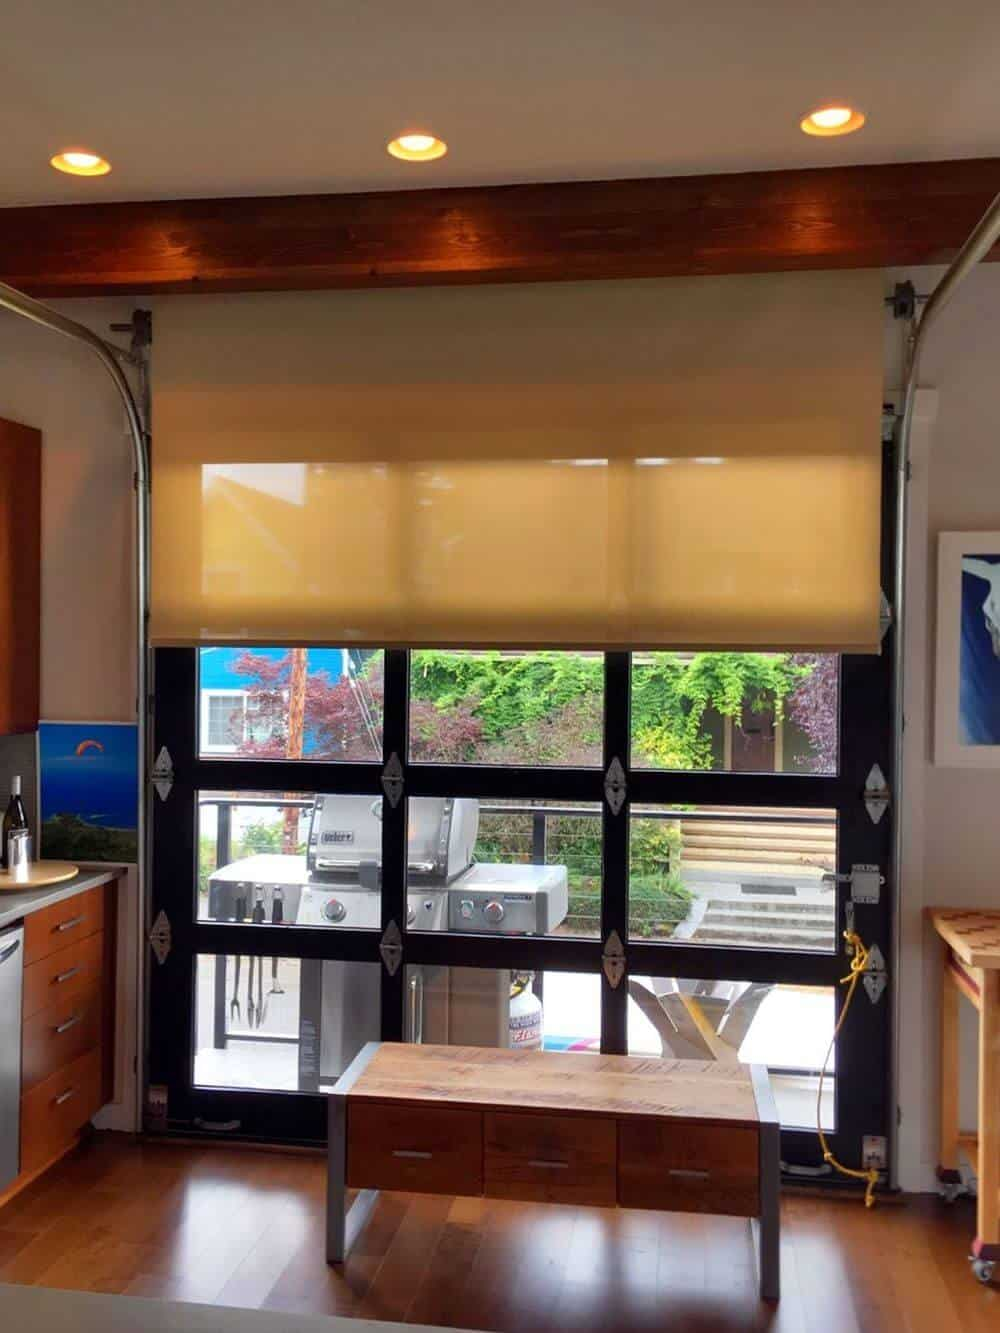 A focused look at this house's gorgeous windows featuring a solar shade. The house also features hardwood floors and a ceiling with exposed beams and has recessed ceiling lights.